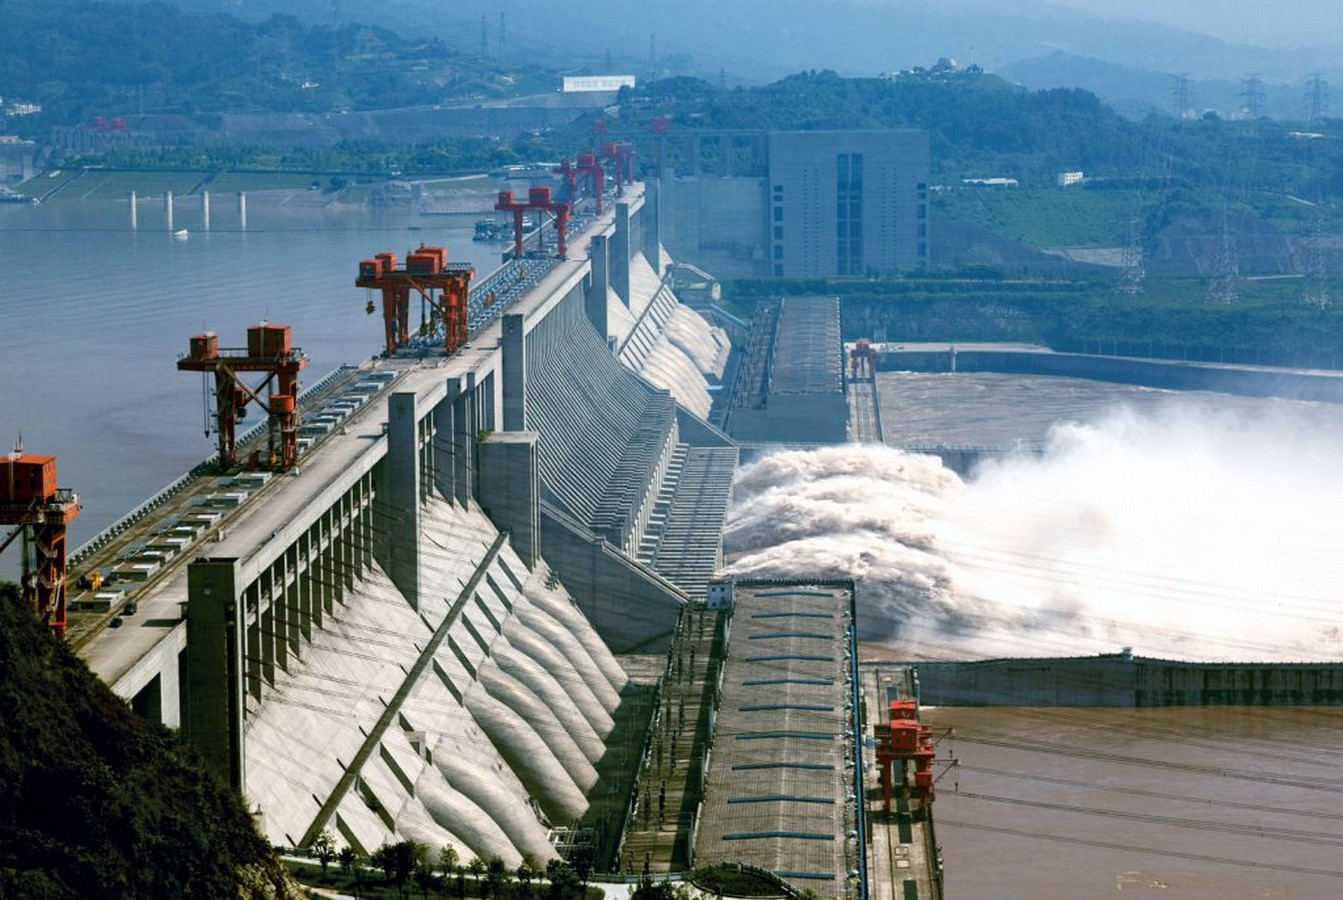 Three Gorges Dam by Pan Jiazheng- The world's Largest hydroelectric dam - Sheet1